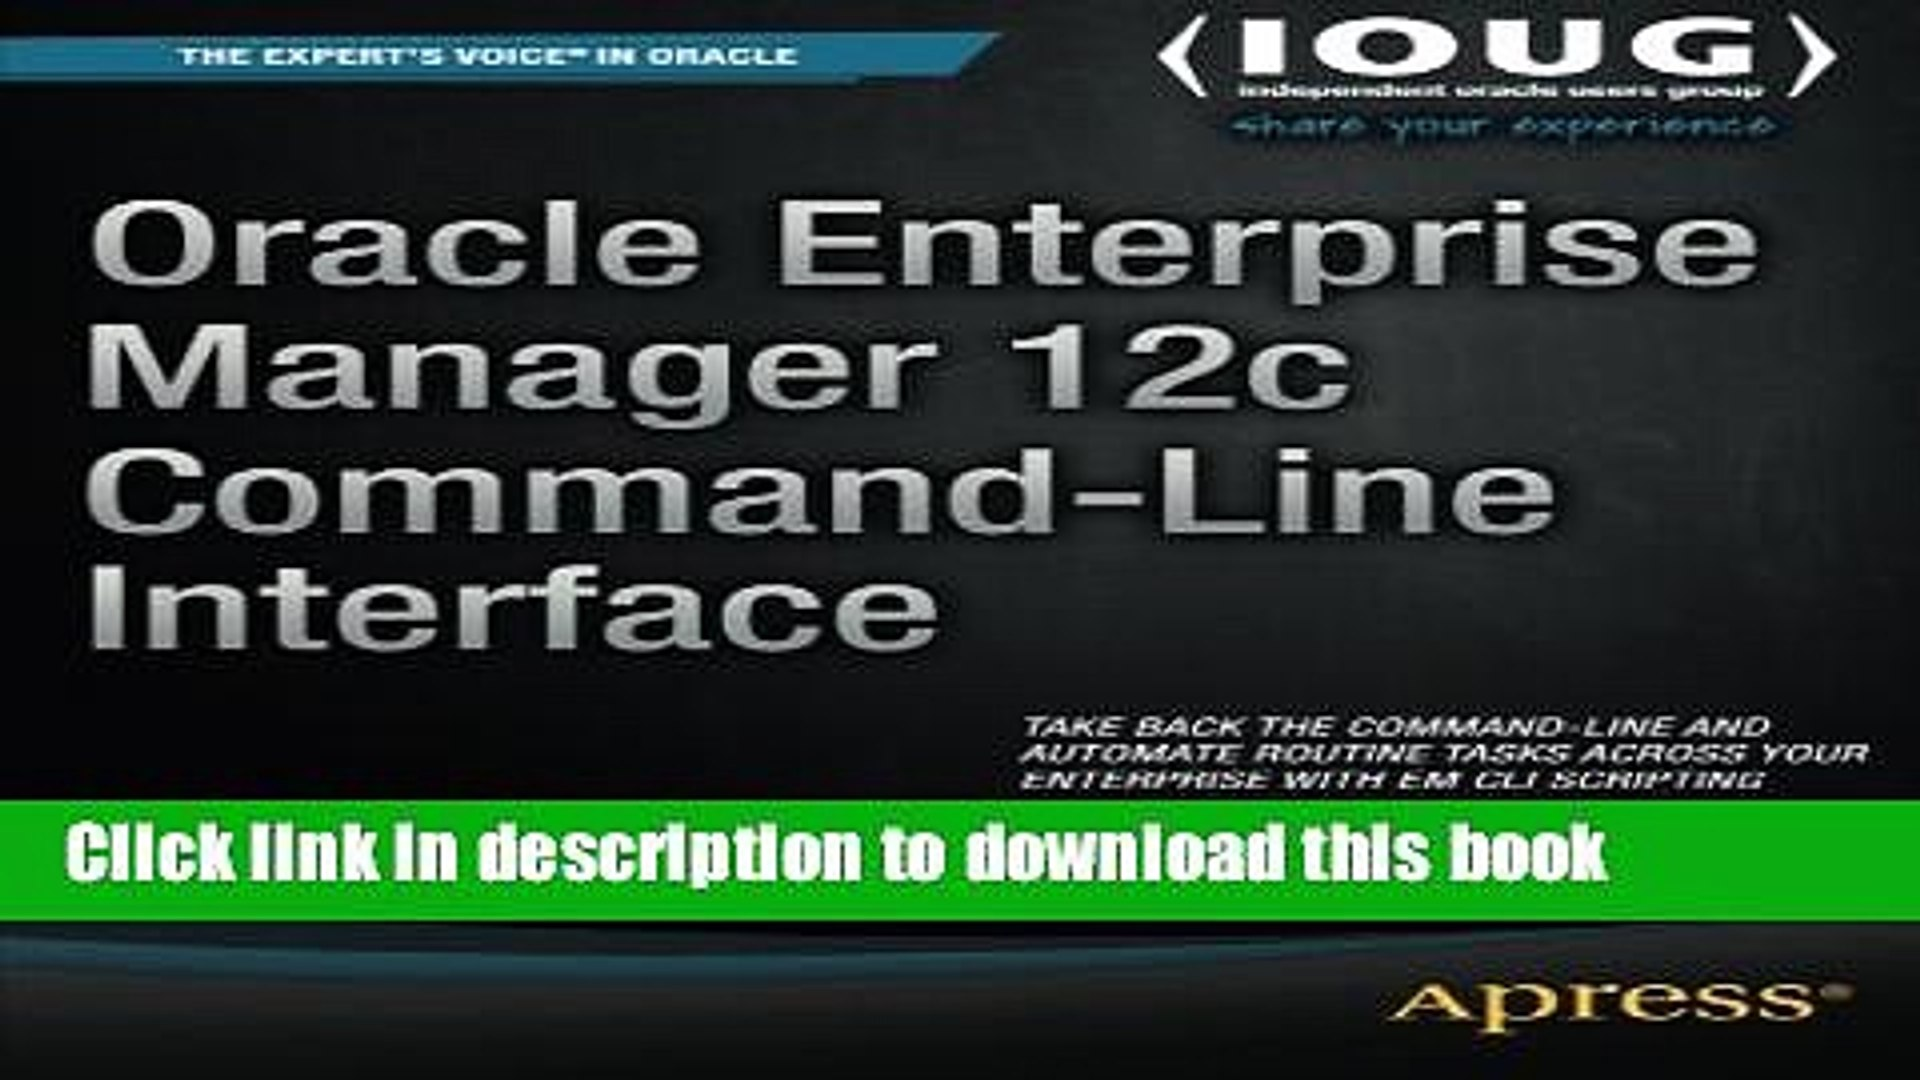 Read Oracle Enterprise Manager 12c Command-Line Interface Ebook Free